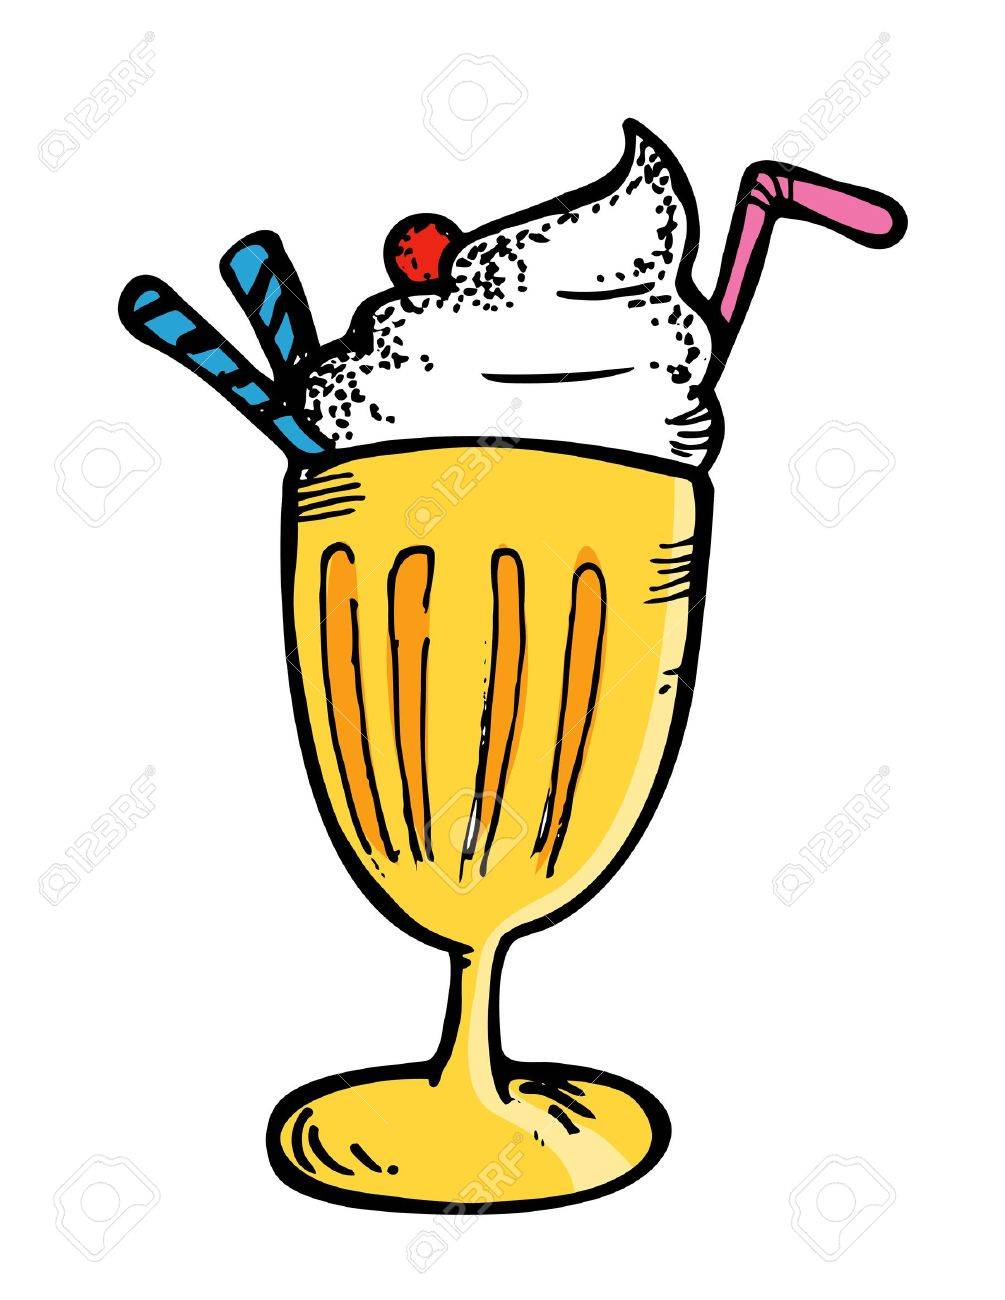 ice cream with float in doodle style.